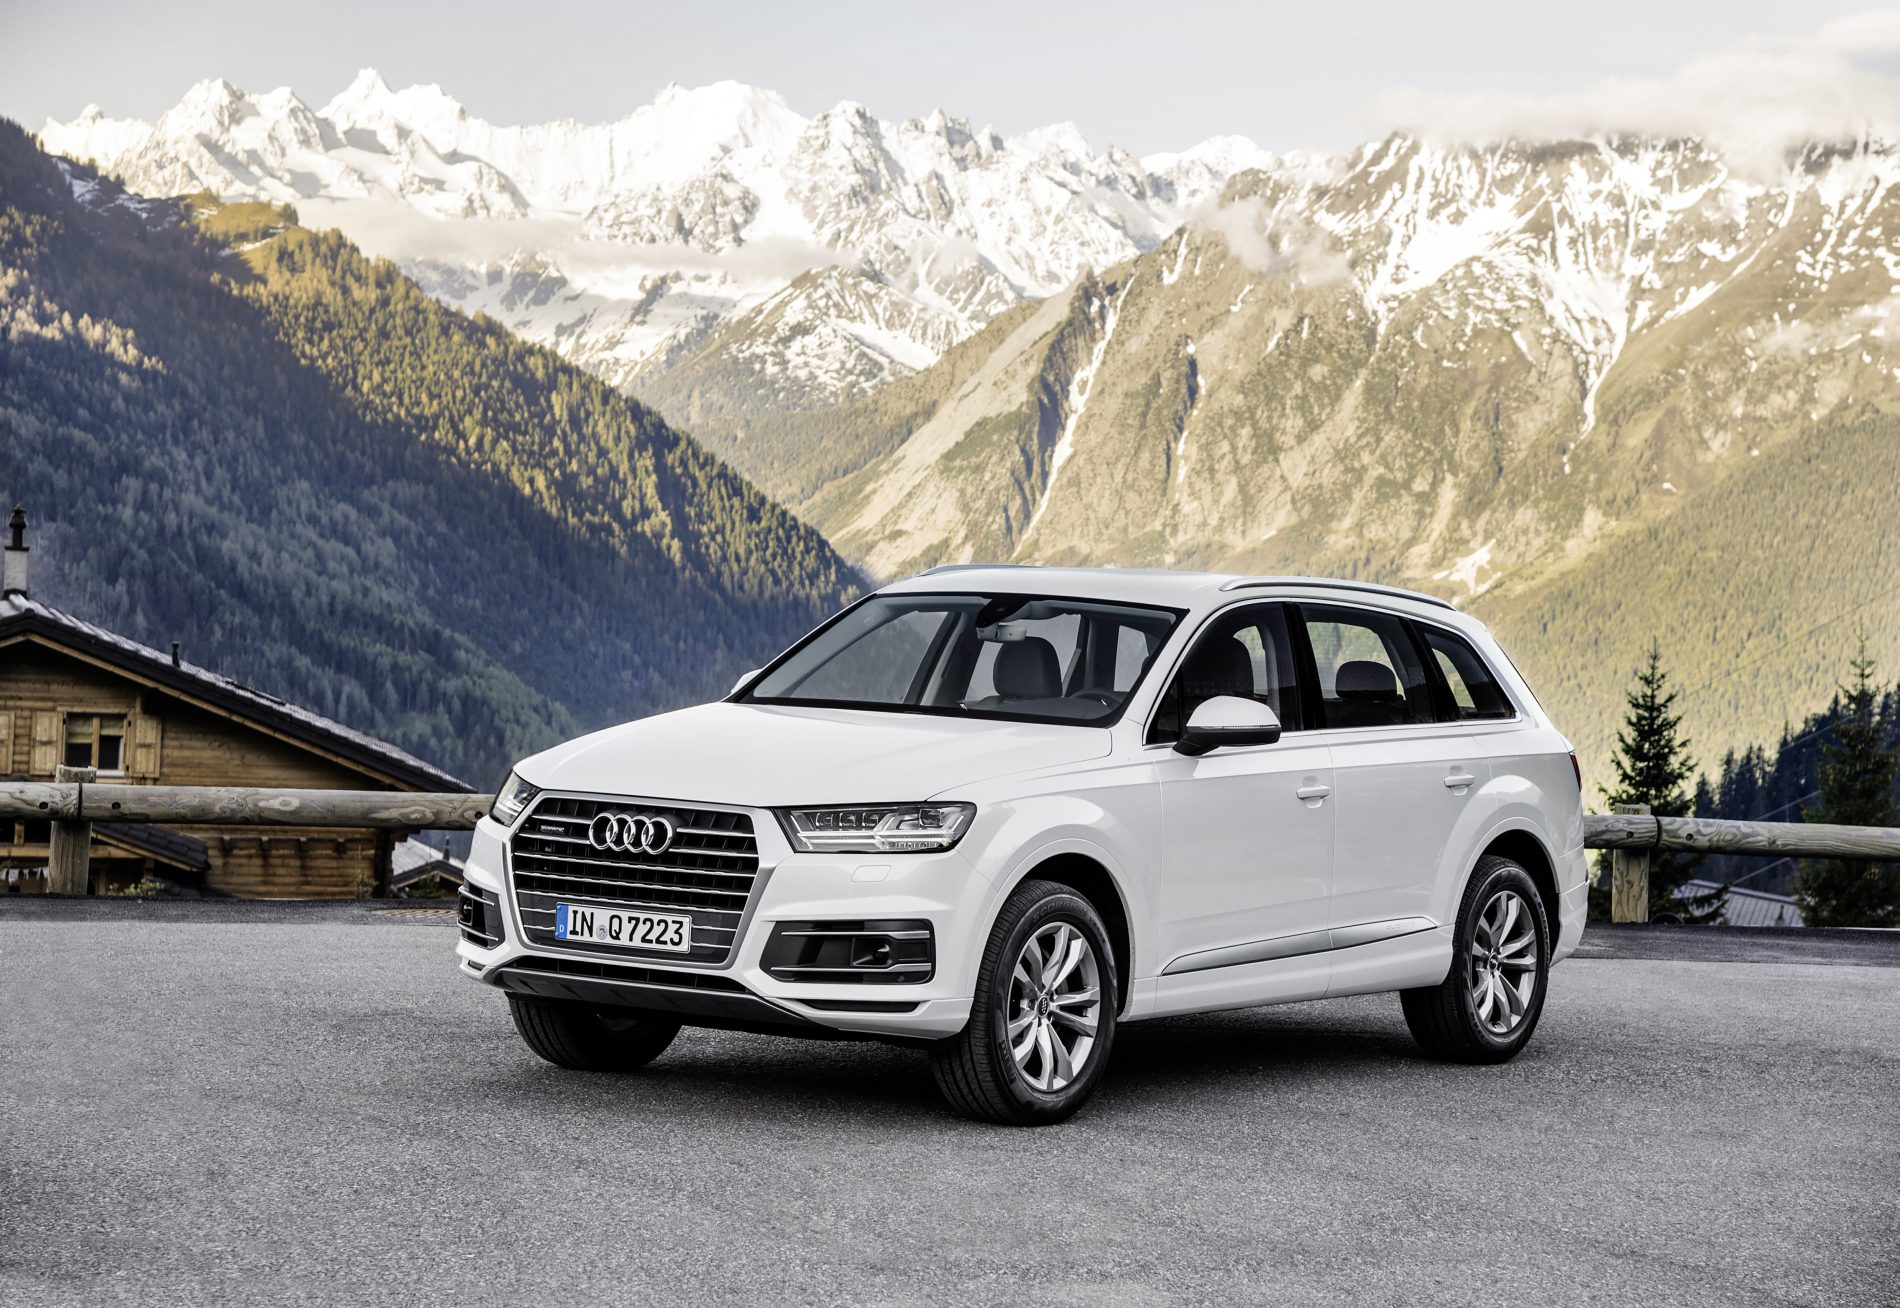 Audi Emerges as Most Innovative Brand at Automotive Innovations Award 2016